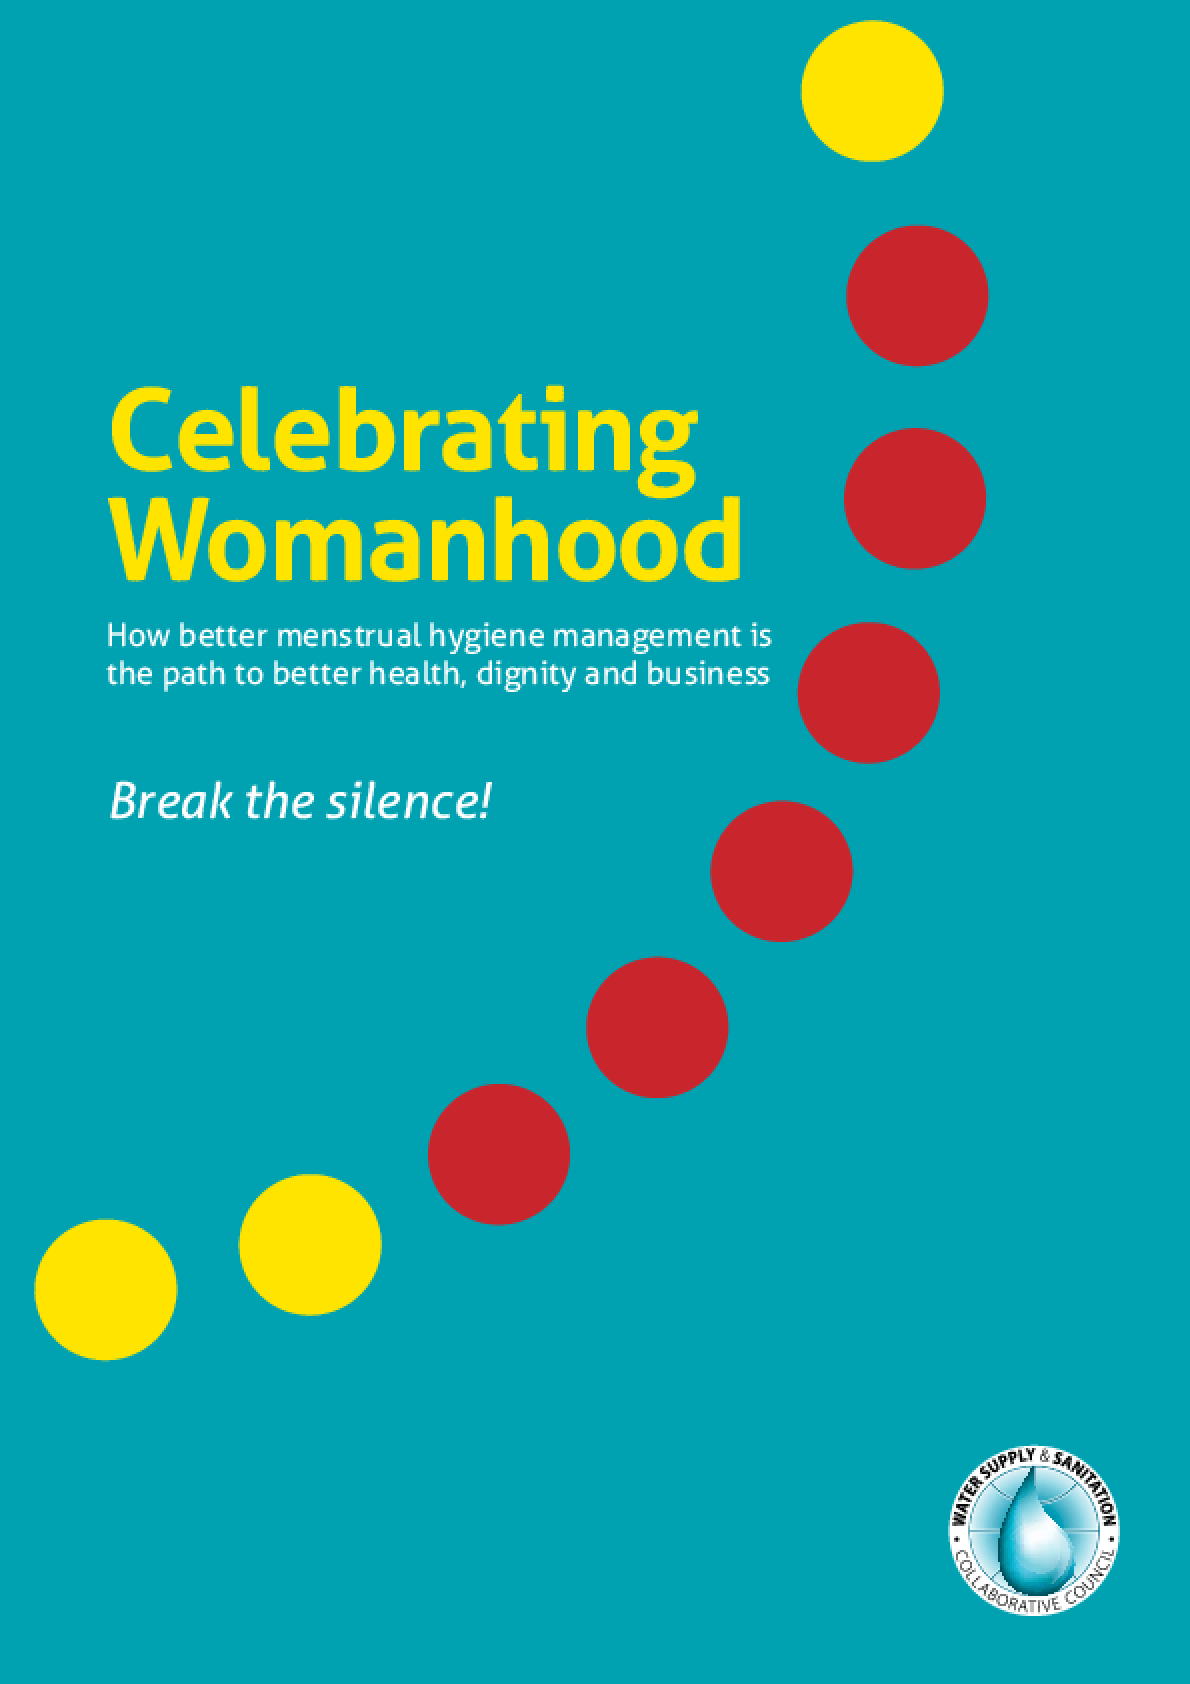 Celebrating Womanhood: How better menstrual hygiene management is the path to better health, dignity and business